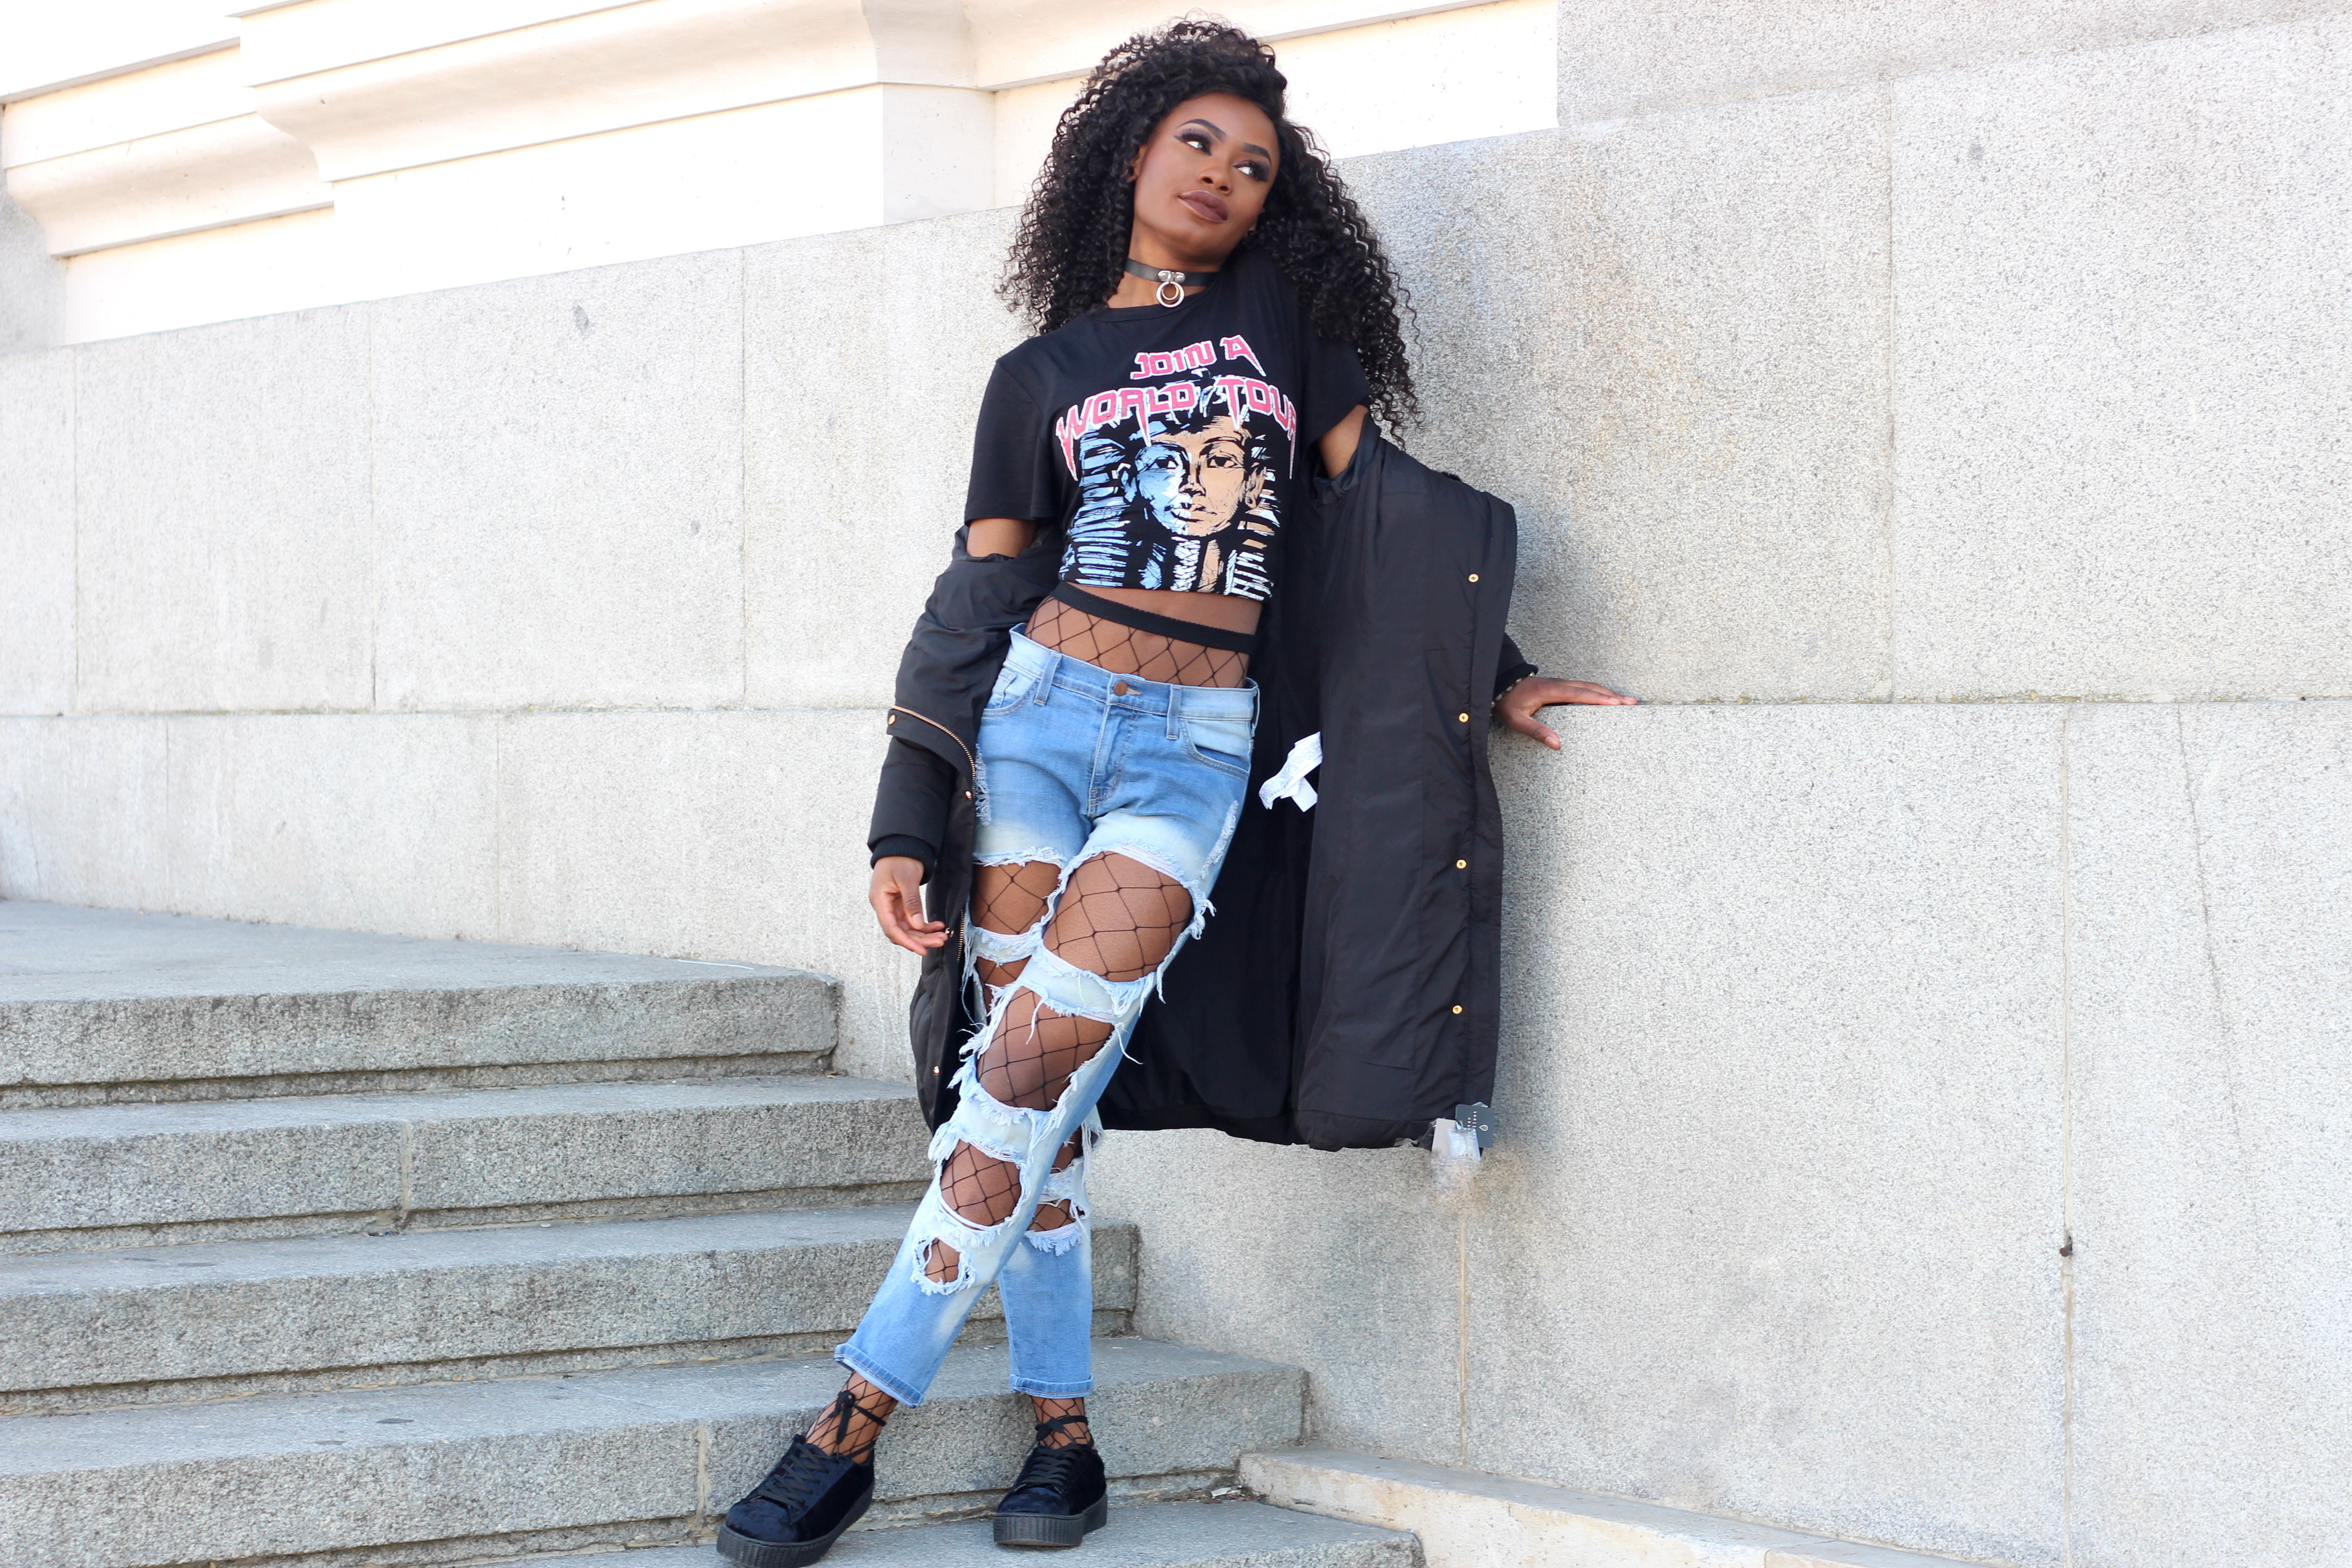 Billykiss Azeez. Your Favourite Muse. Fashion Irish Blogger. African Blogger. Street style. Zara Black Coat. Pretty Little THings Top. Aliexpress choker. Fashionnova Jeans. Quanticlo shoes. Winter Style. High Fashion. A/W 16.